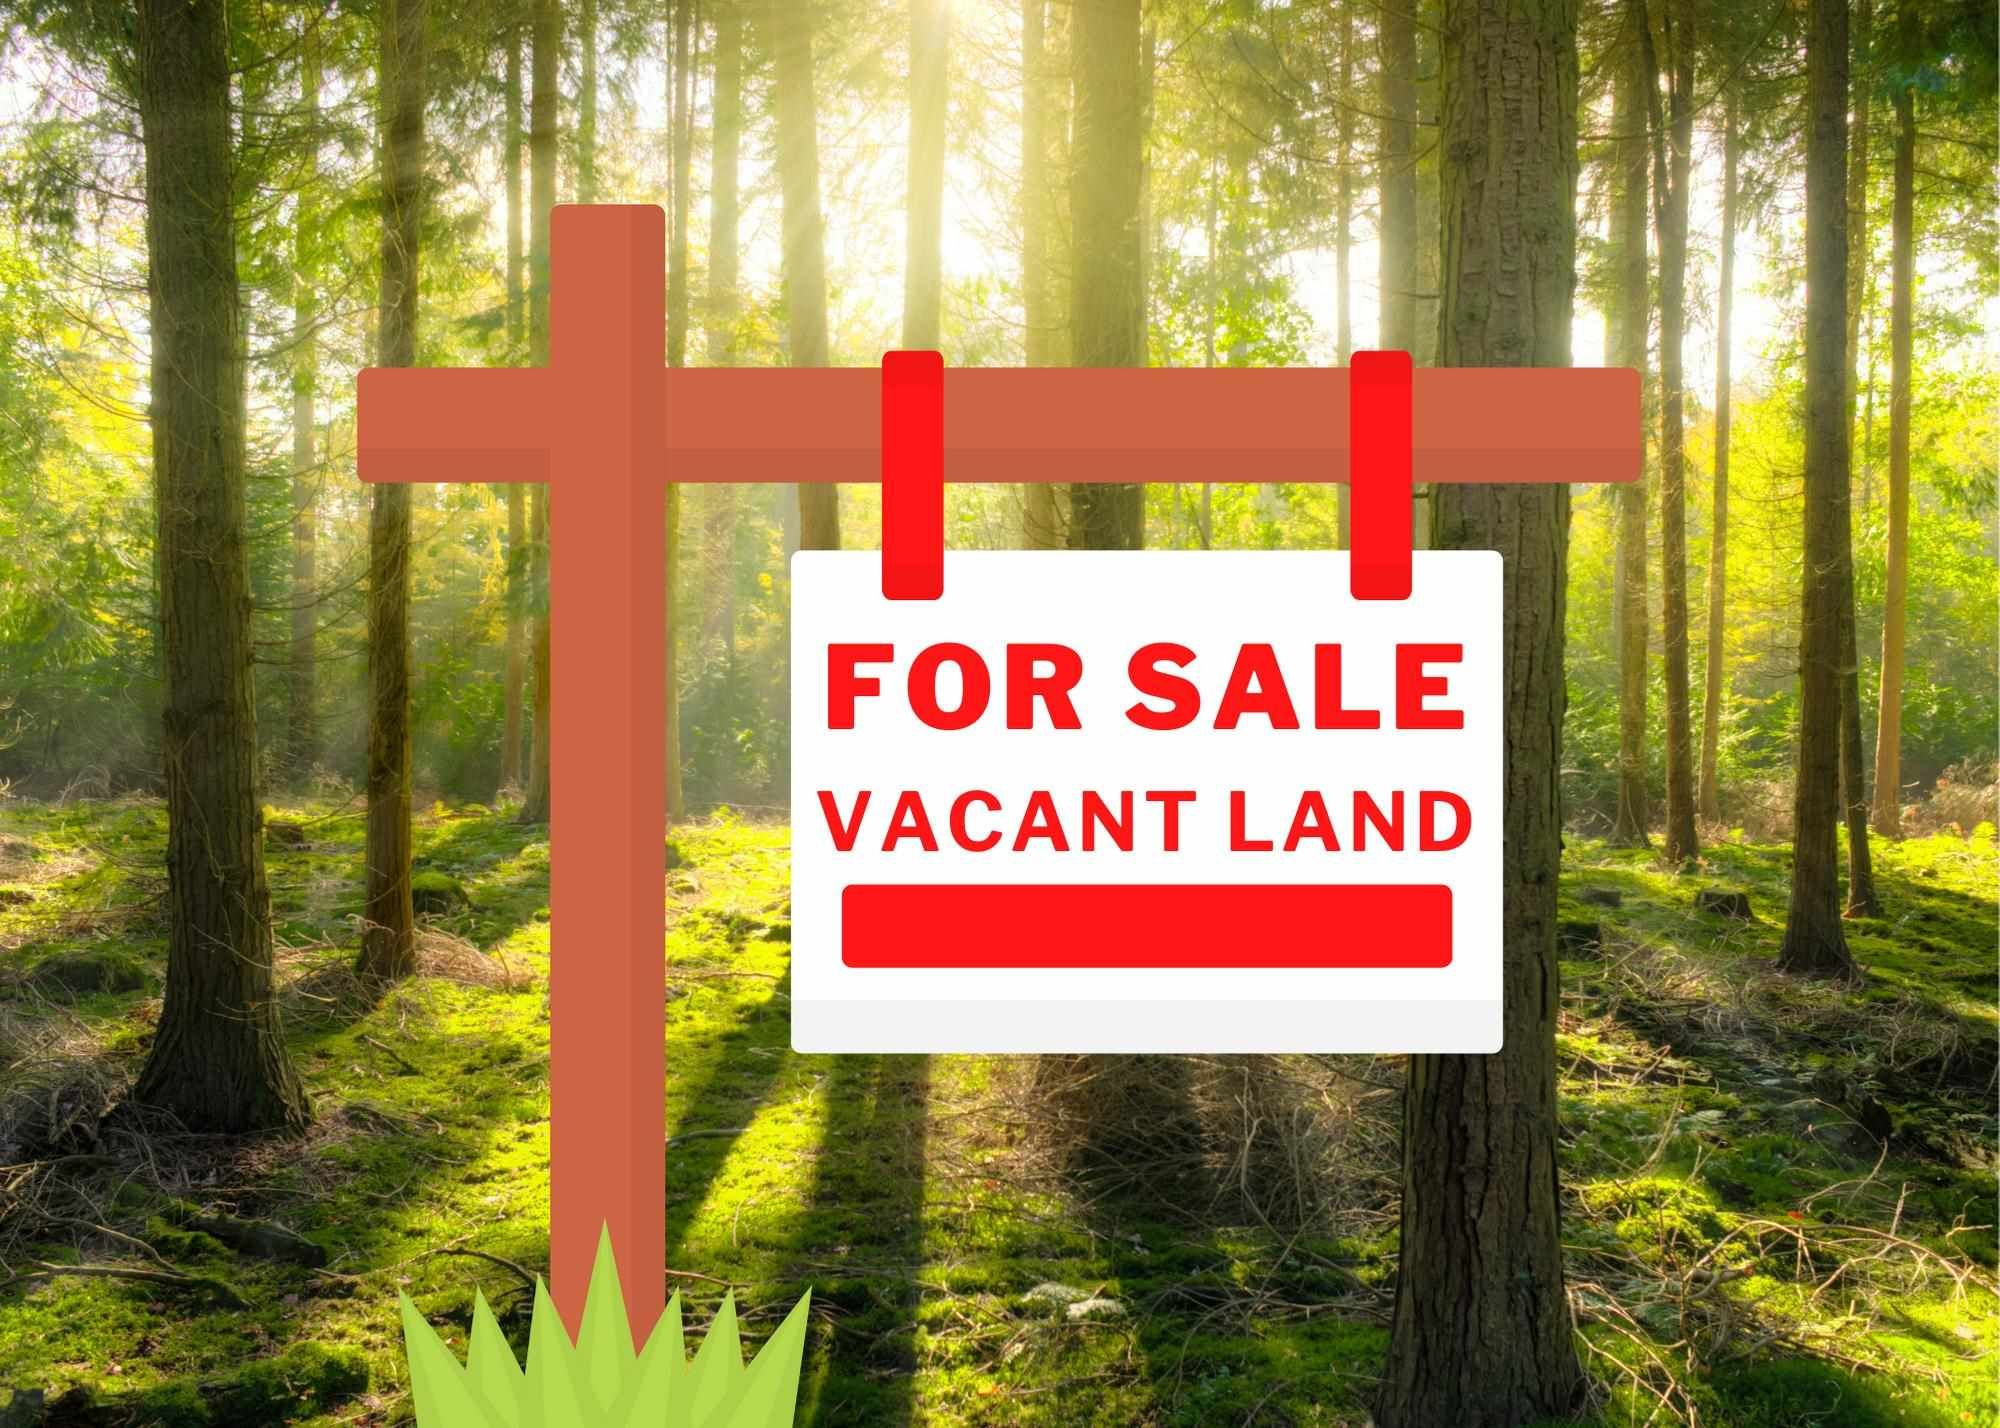 Main Photo: 239 New Cheverie Road in Burlington: 403-Hants County Vacant Land for sale (Annapolis Valley)  : MLS®# 202110100